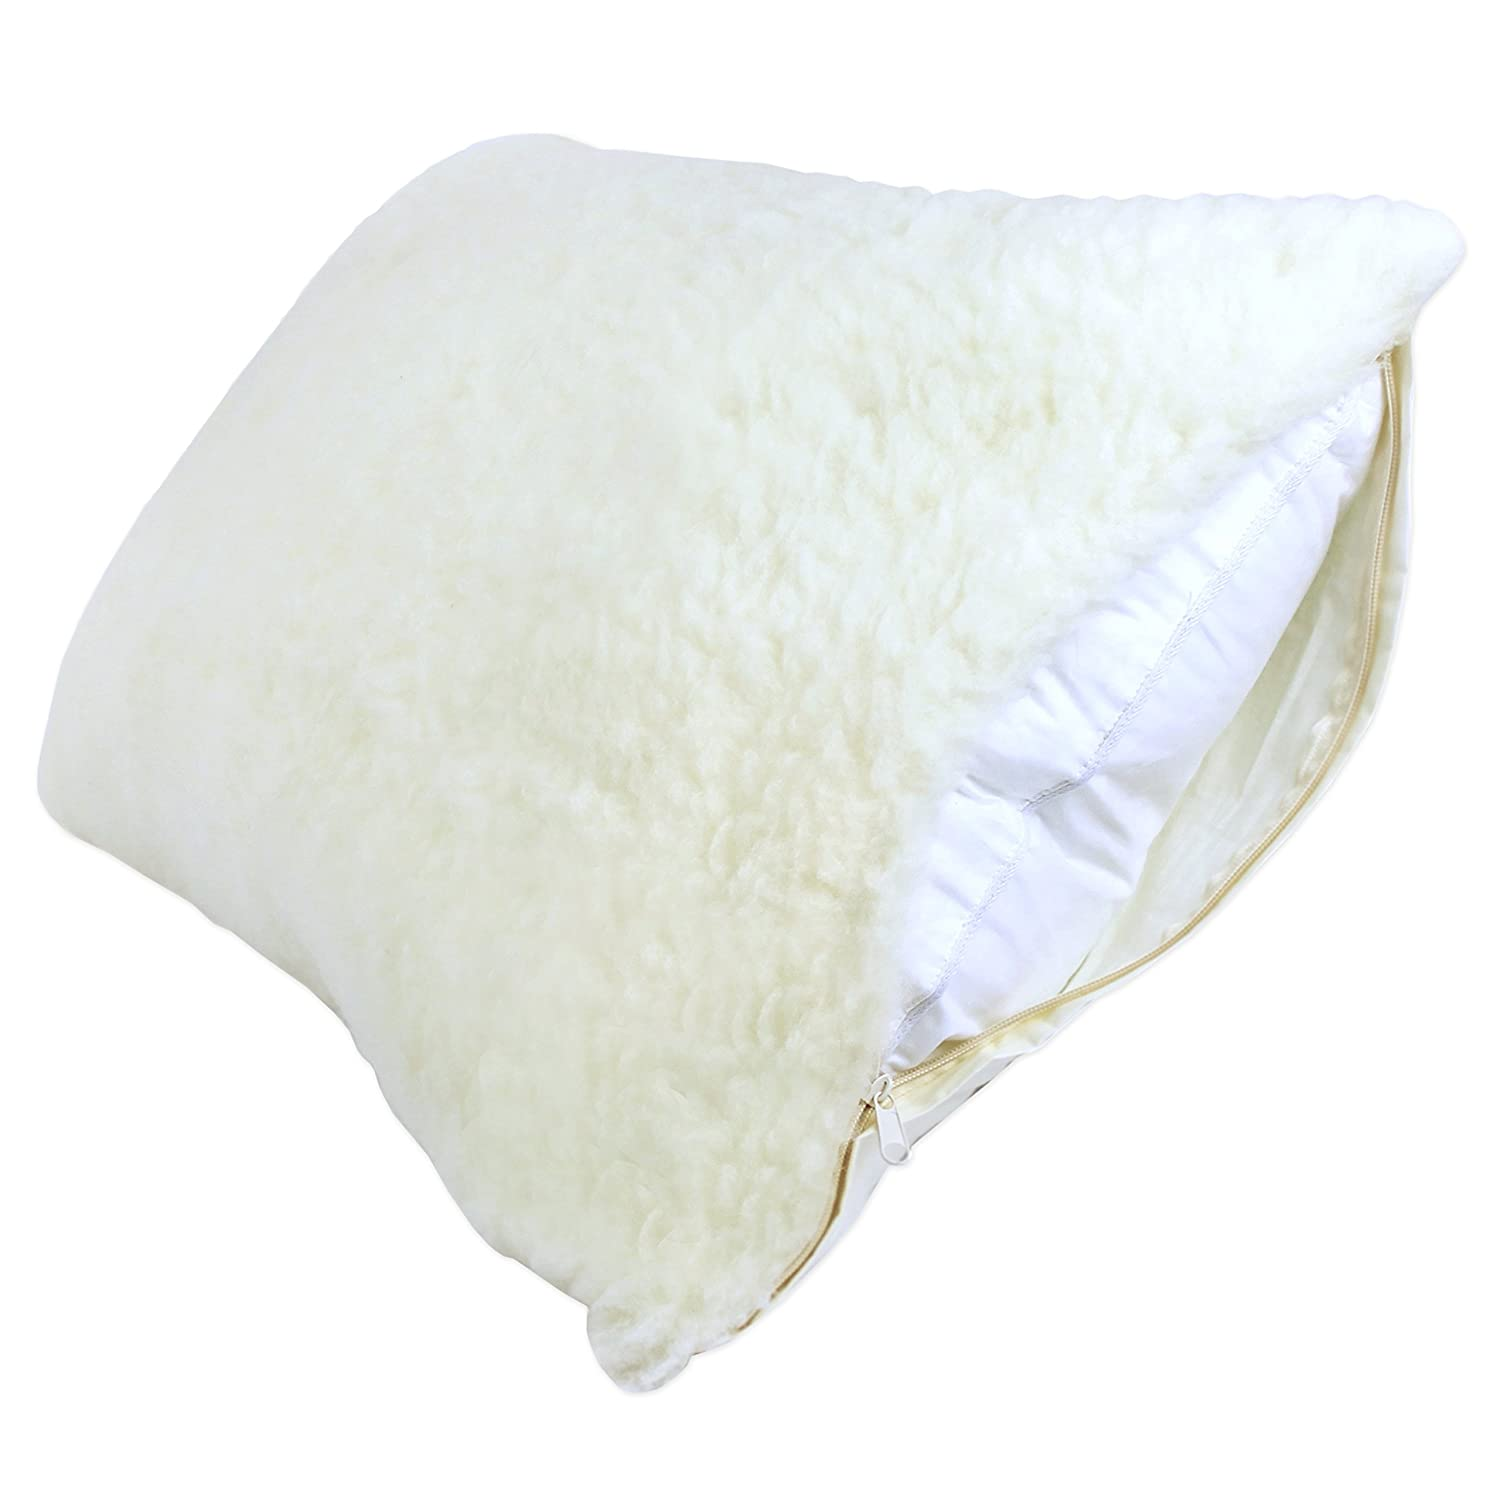 Century Home C601-147 Signature Collection Woolmark Certified Pure Wool Fleece Pillow Protector, King Century Home Fashions